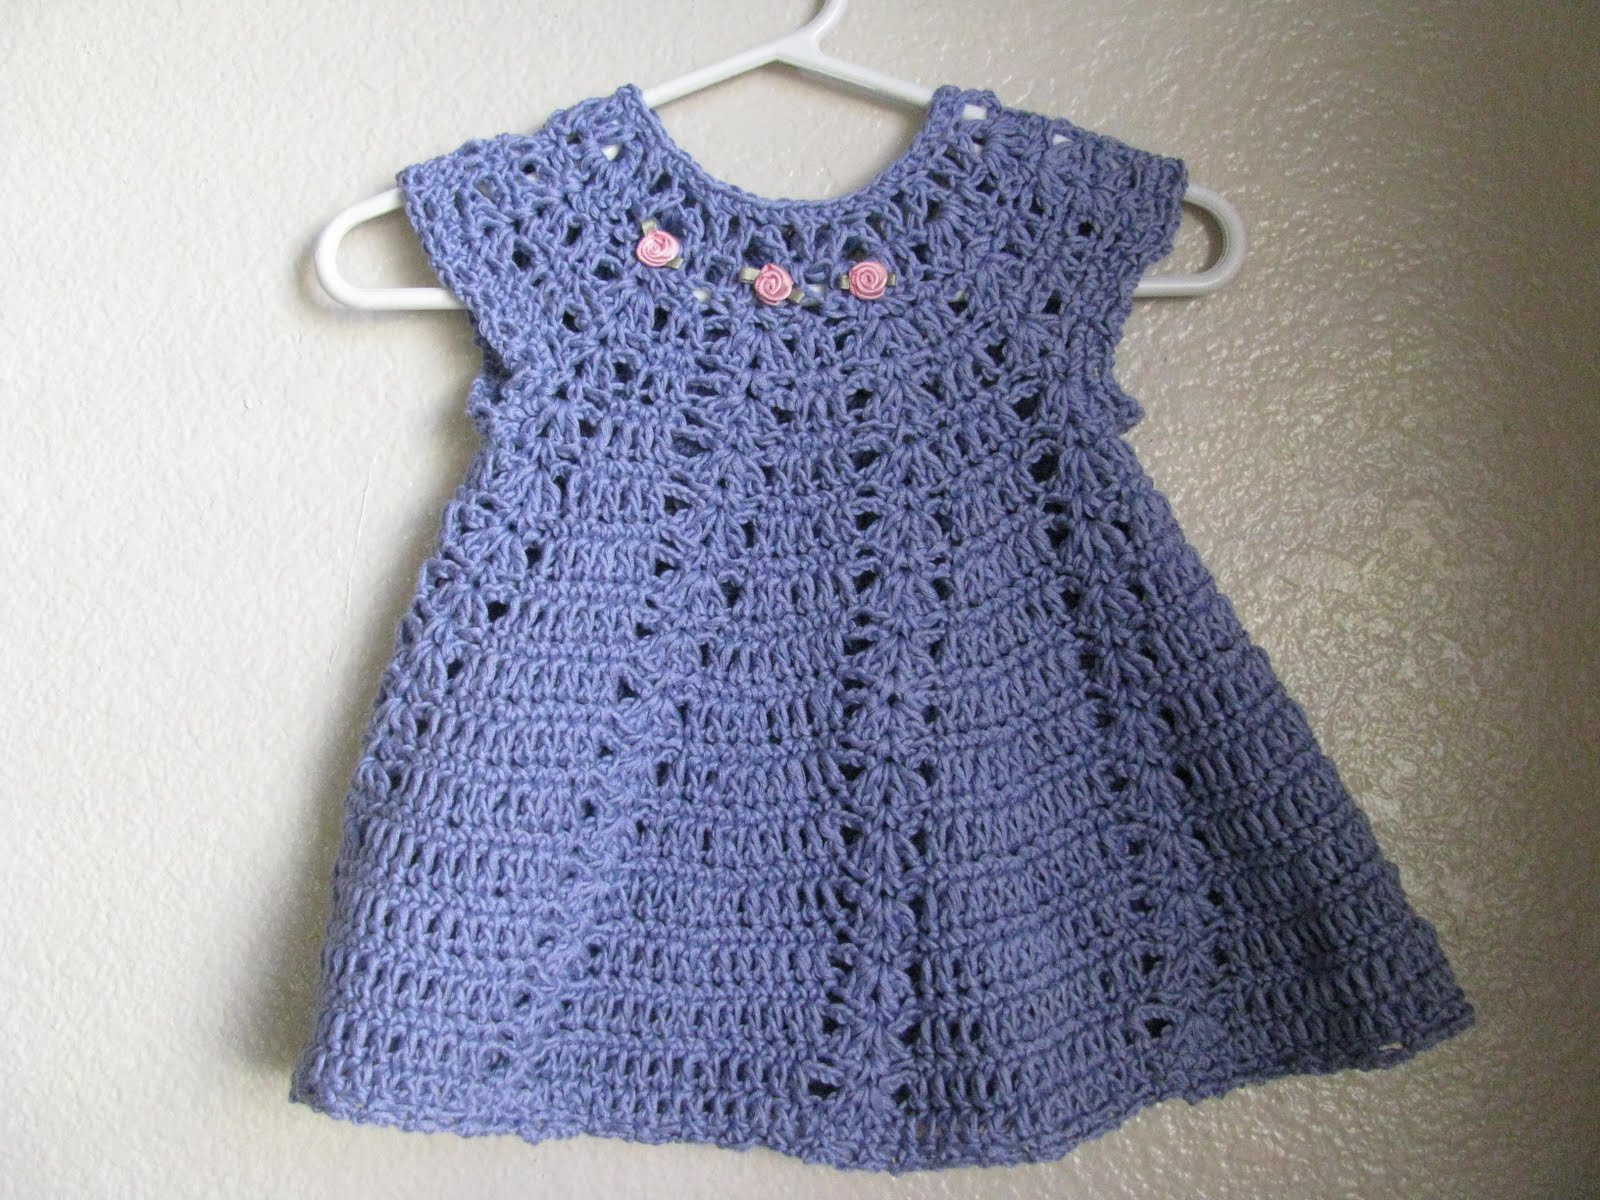 Unique My Latest Project My First Crocheted Baby Dress Finished Crochet toddler Dress Pattern Of Brilliant 45 Ideas Crochet toddler Dress Pattern